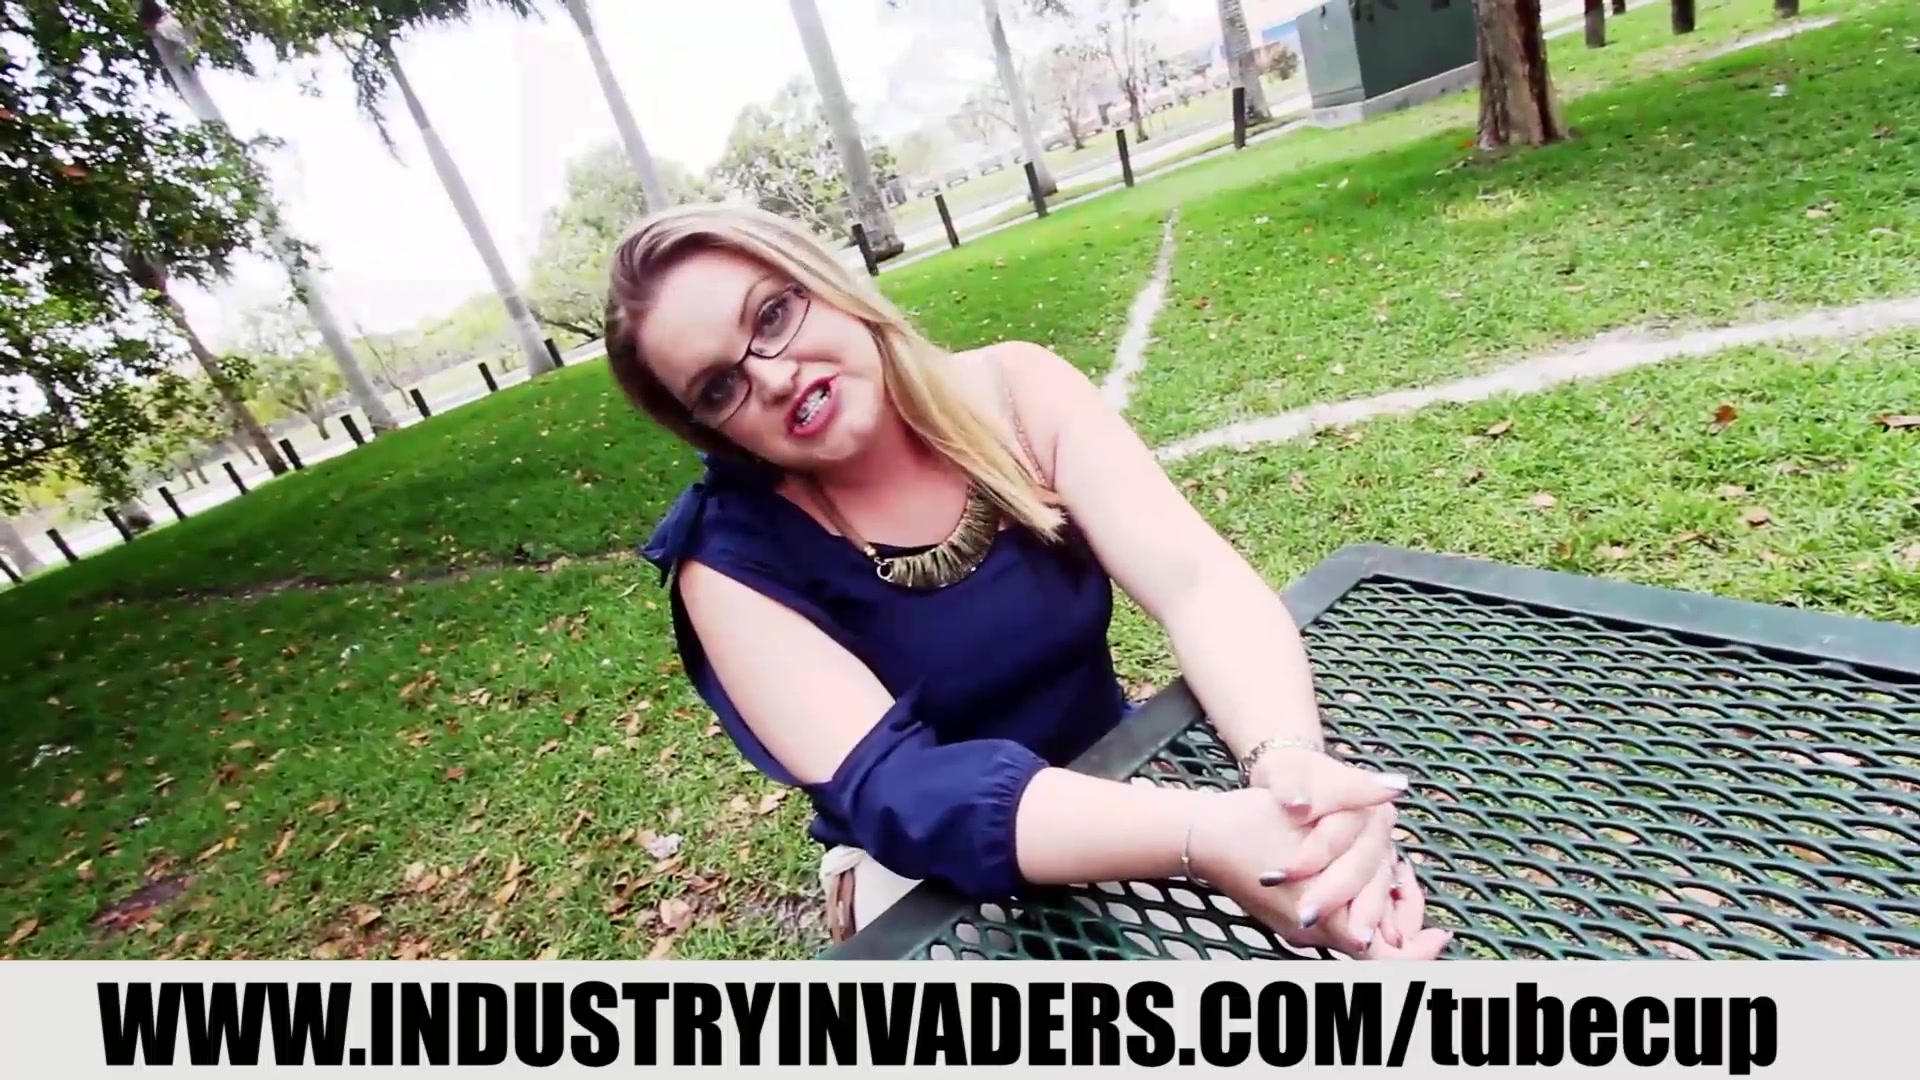 Industry Invaders - Milf Holly Interracial Xsex Video